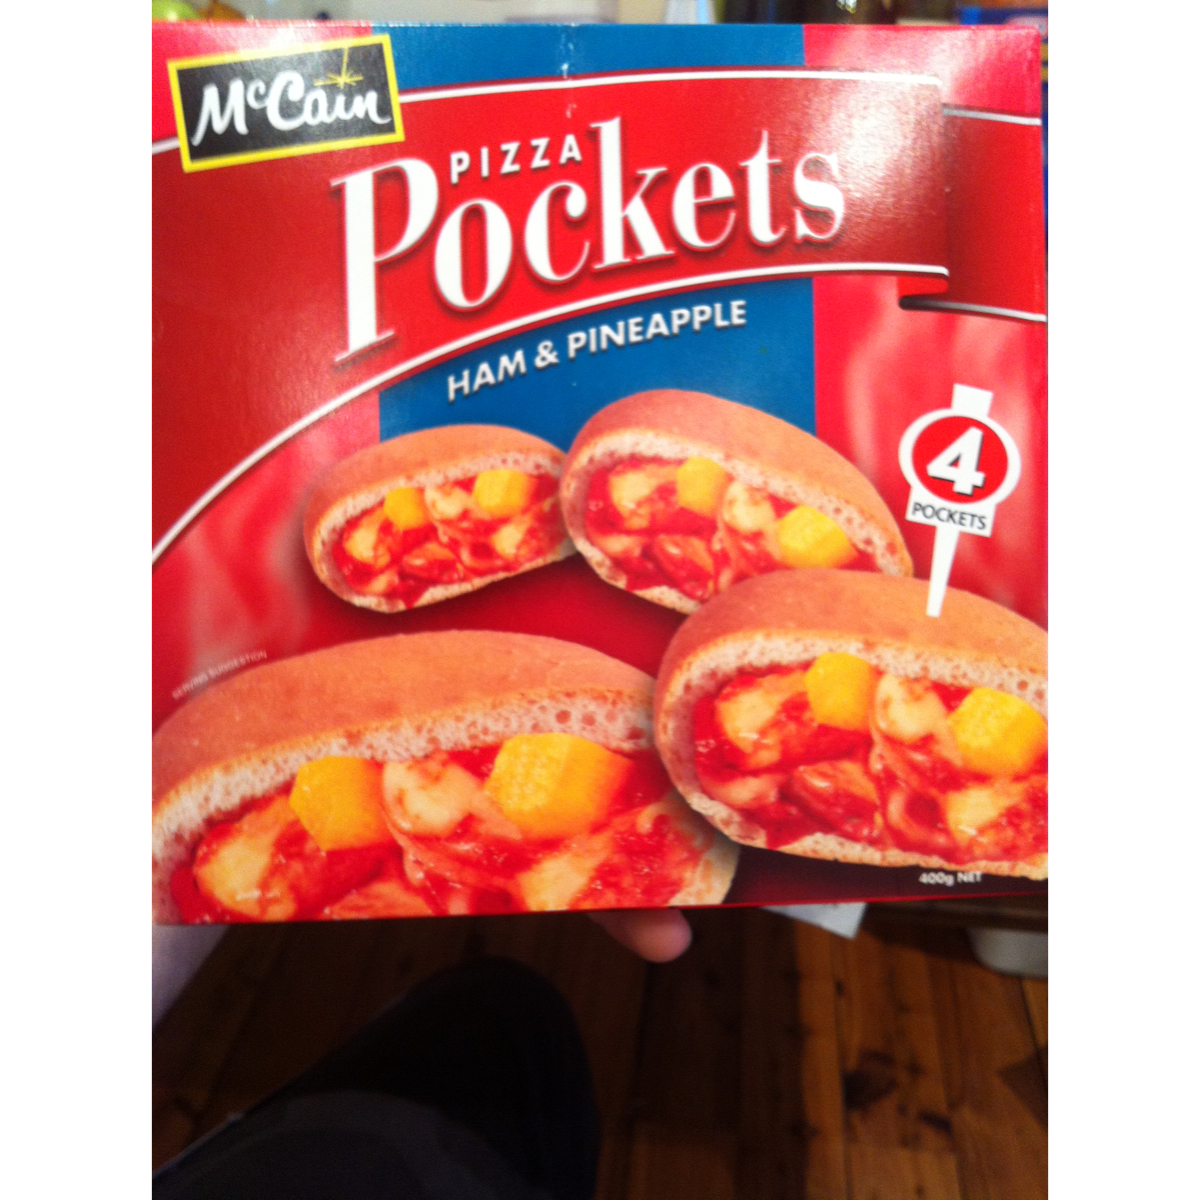 McCain Pizza Pockets Ham and Pineapple 400g